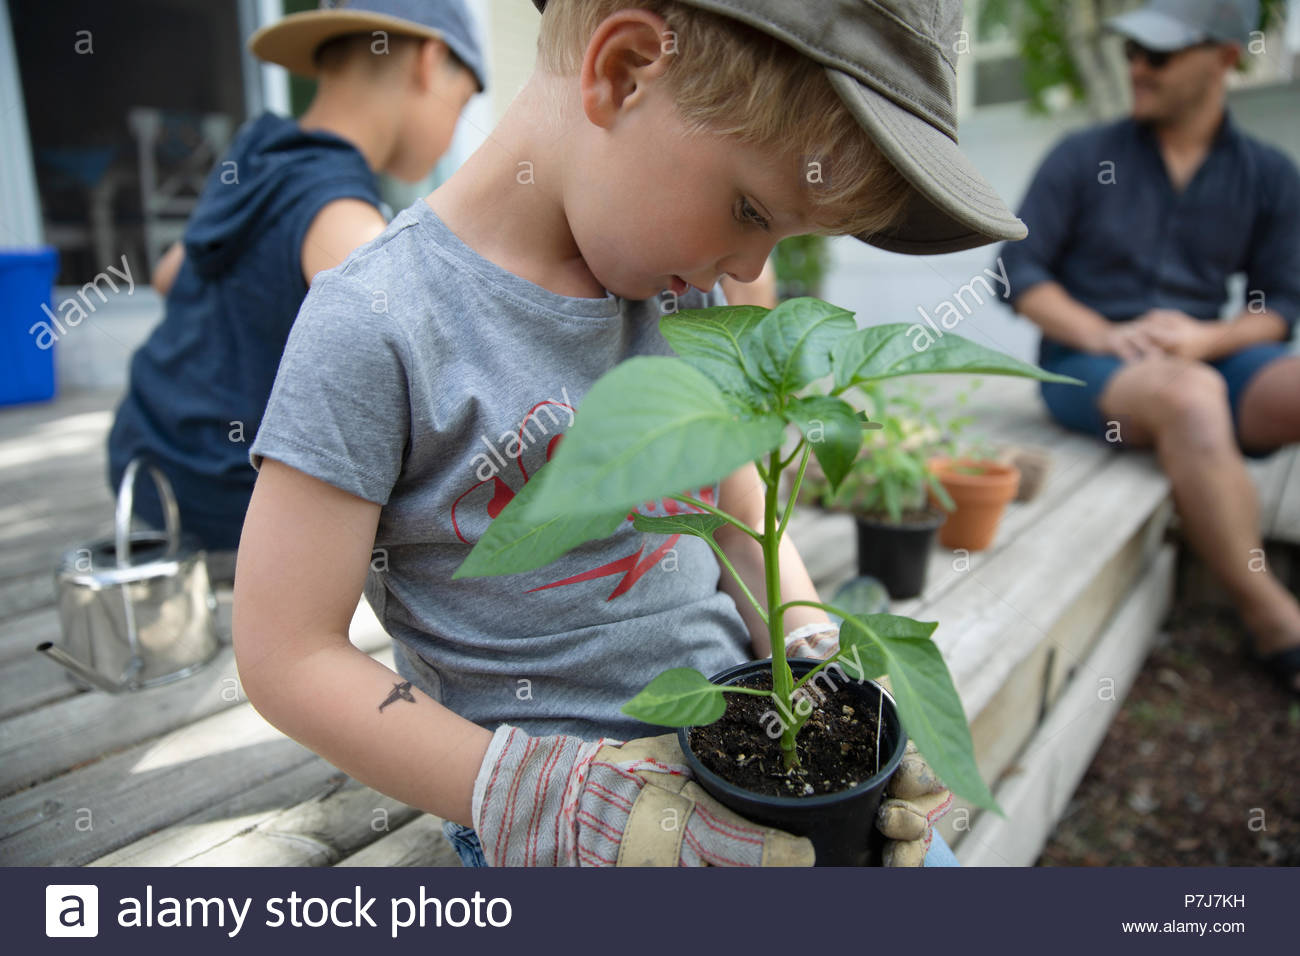 Curious boy planting potted plant - Stock Image